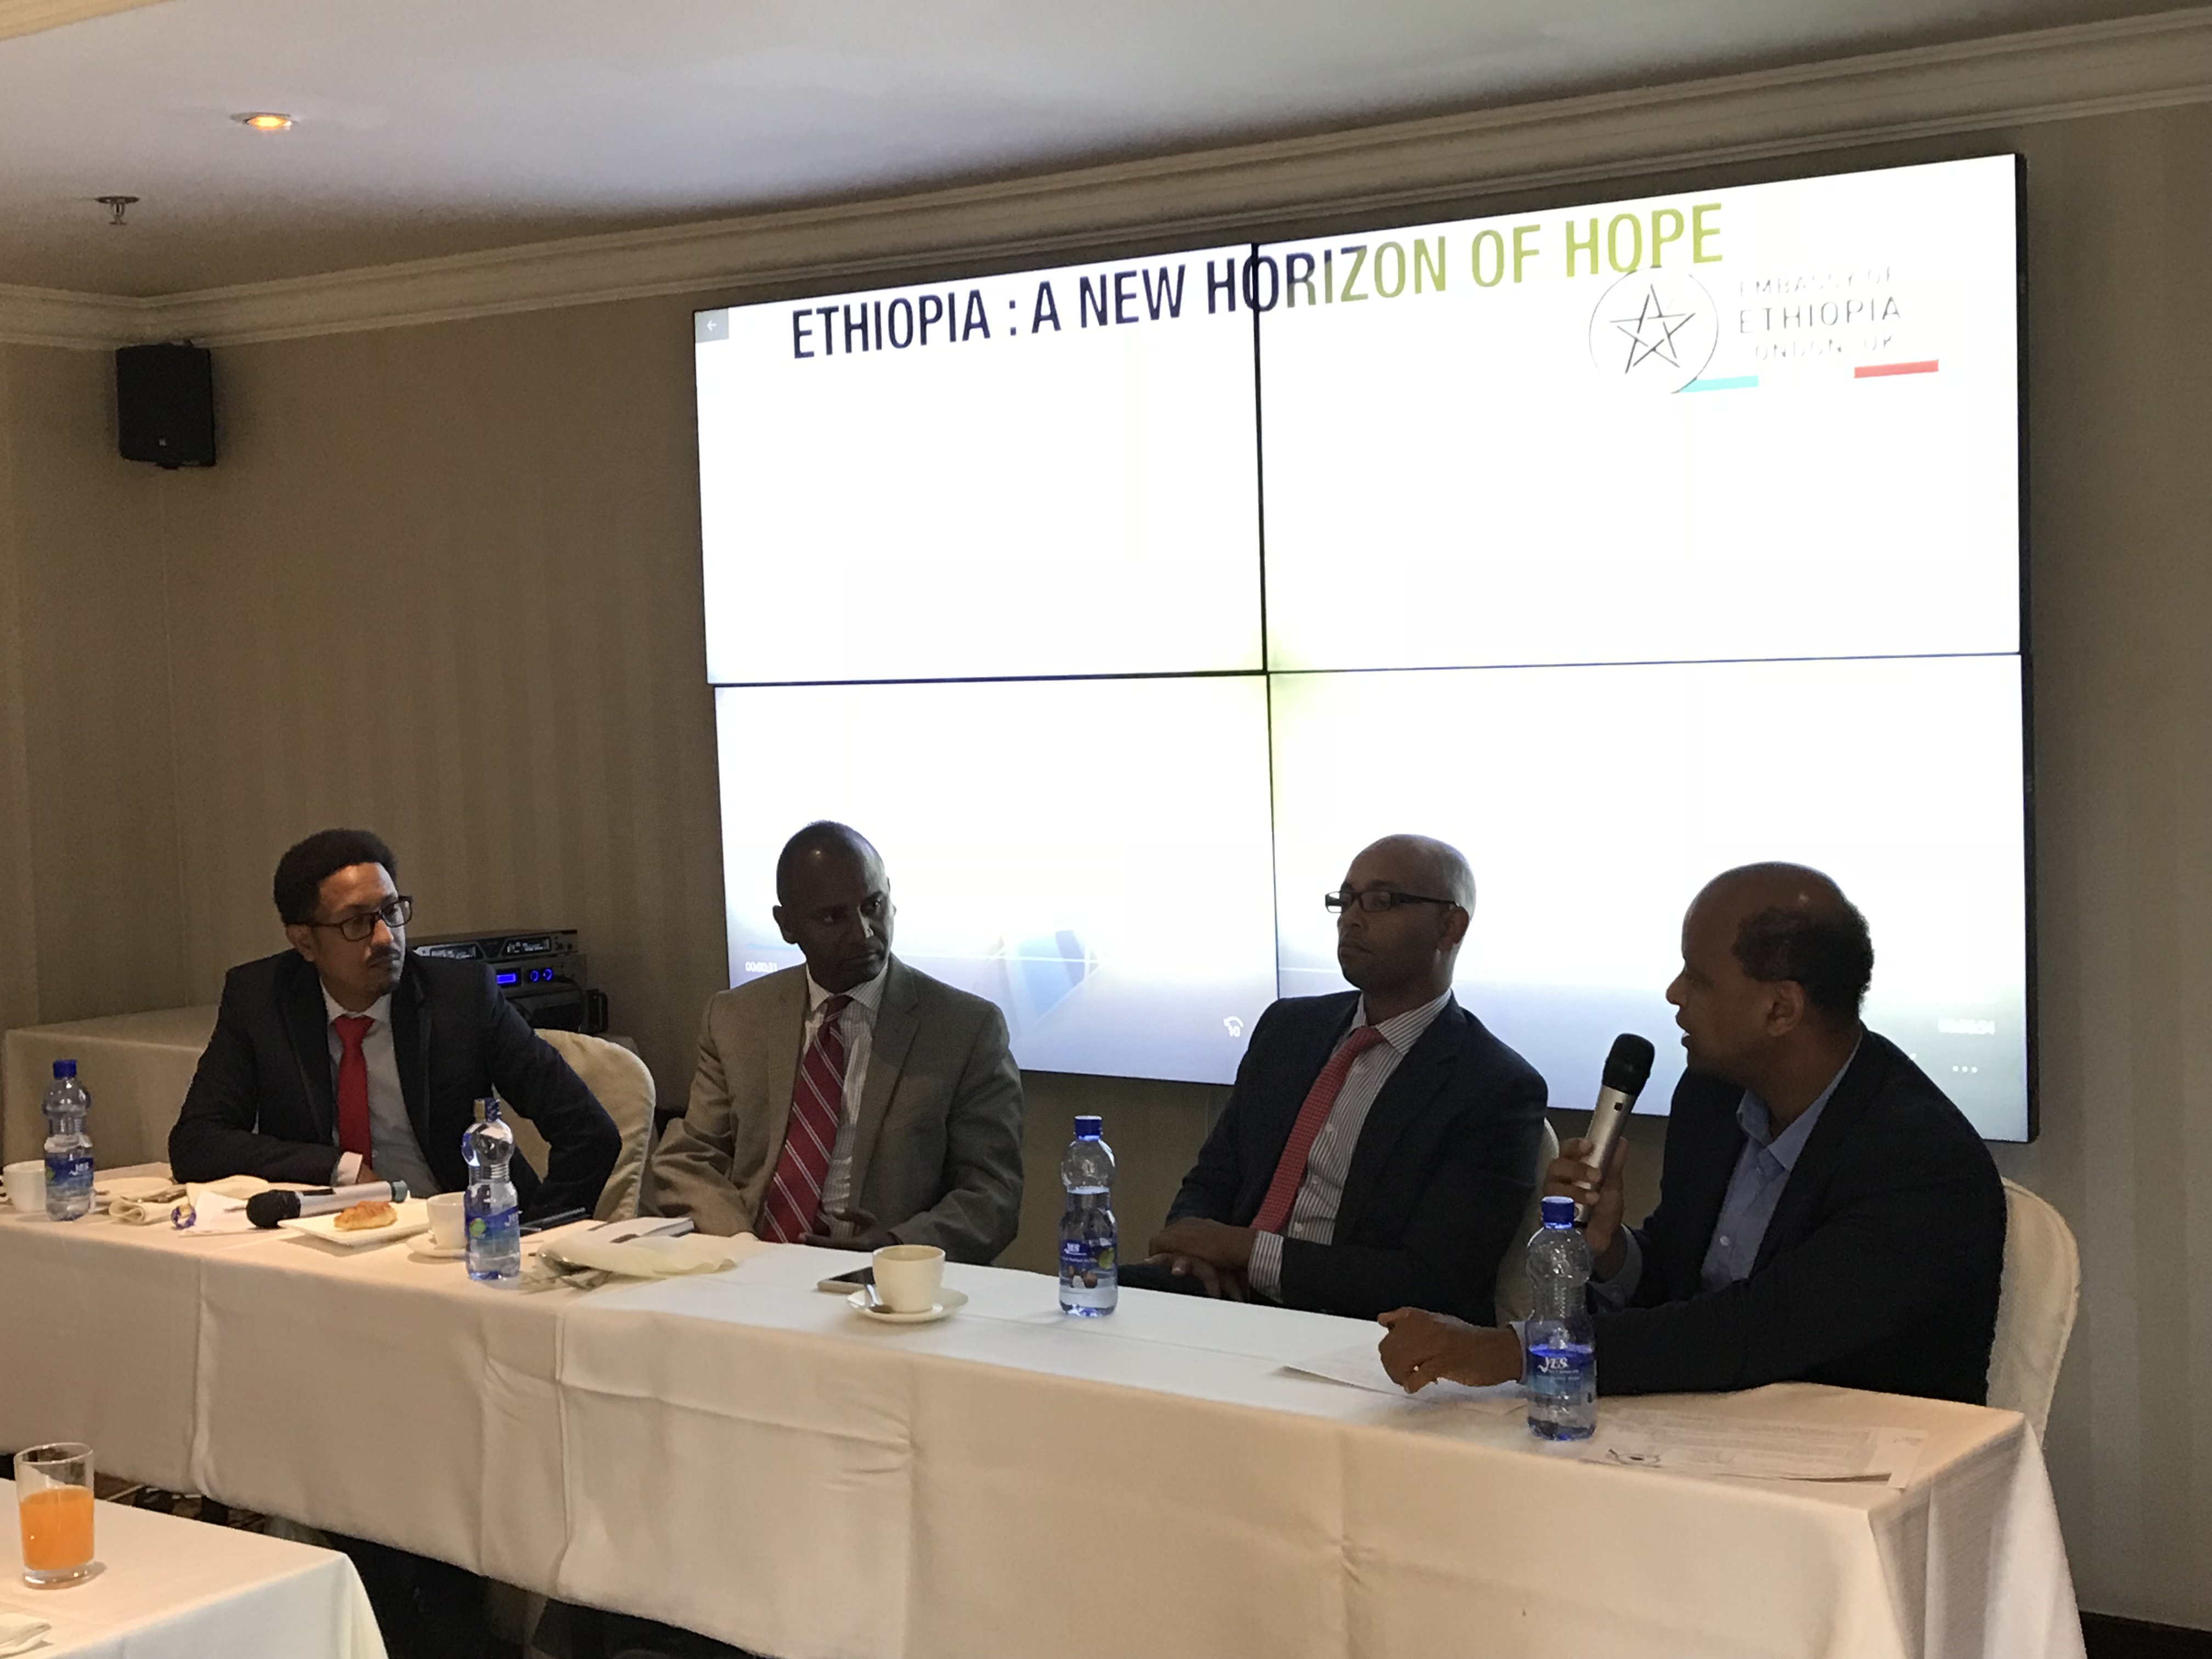 panel-discussion-on-the-mid-term-economic-future-of-ethiopia-held